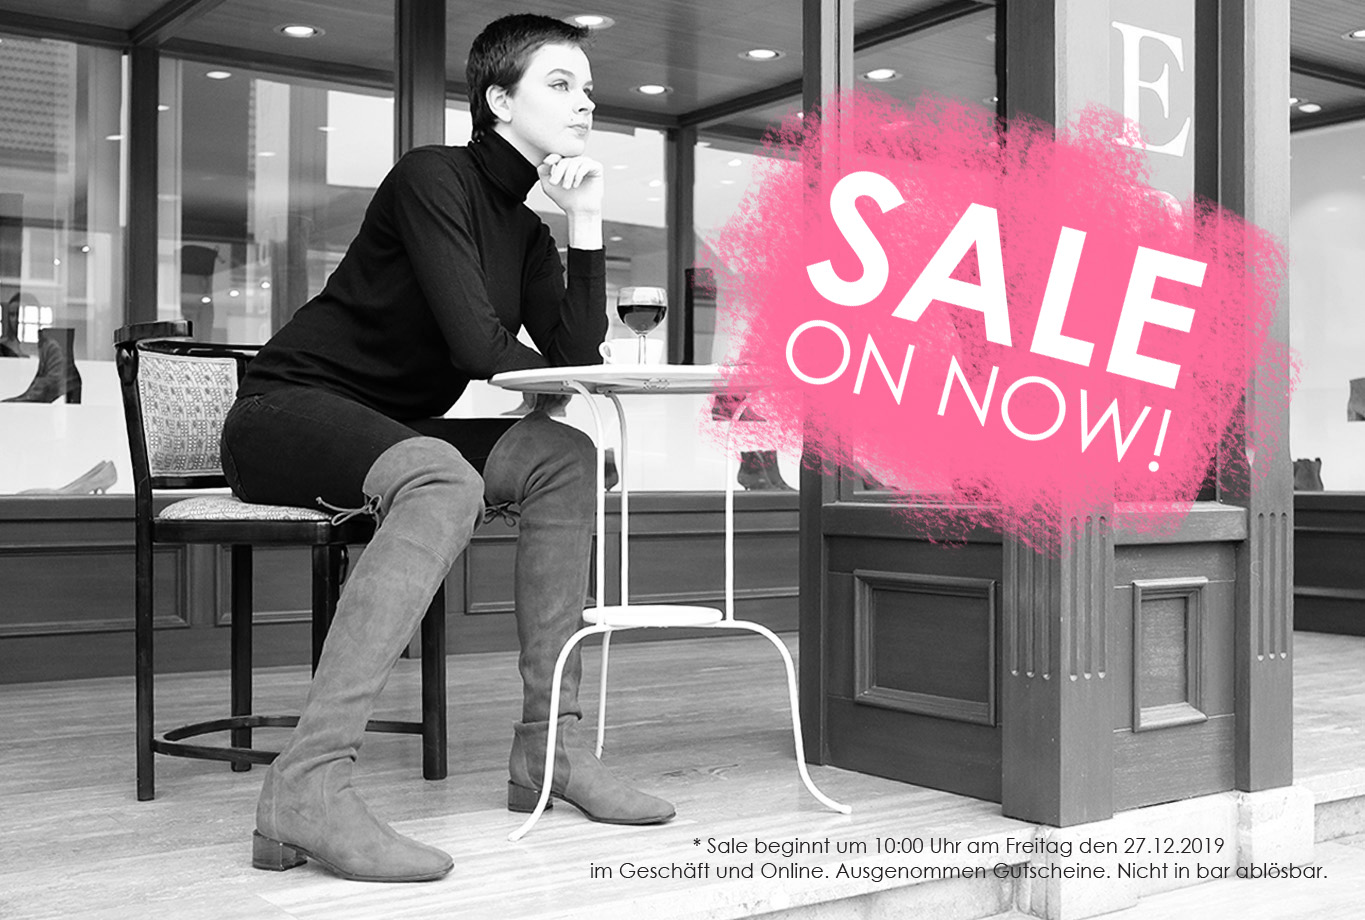 Sale bei Wunderl now on!